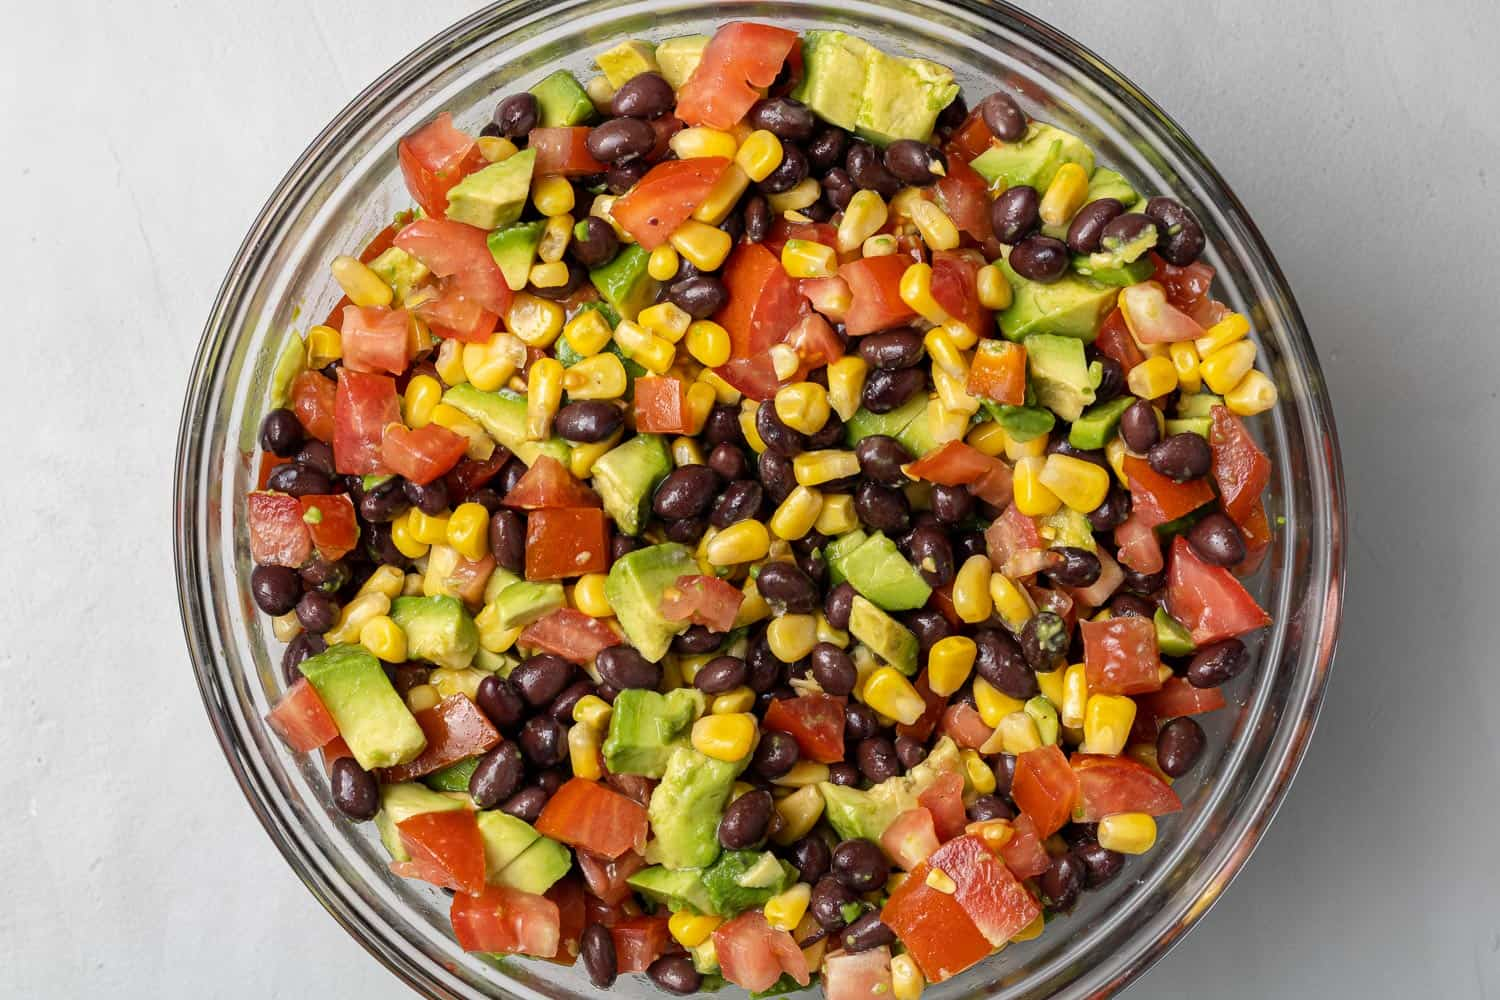 Chopped vegetables, avocado, and beans in a white glass bowl.